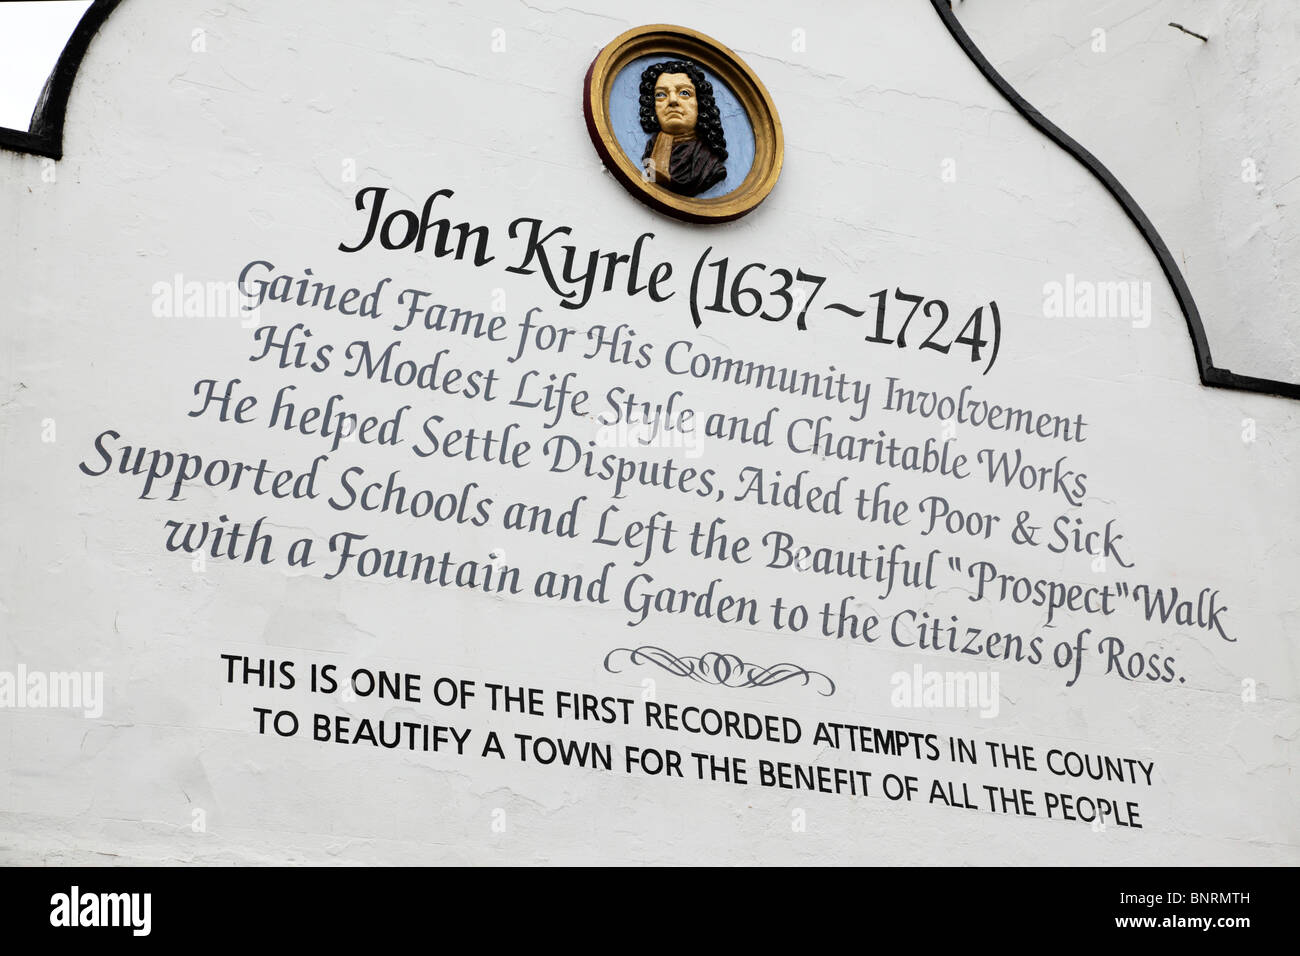 Facade of the Man Of Ross Inn dedicated to John Kyrle a charitable worker 1637-1724 Wye Street Ross-On-Wye herefordshire - Stock Image